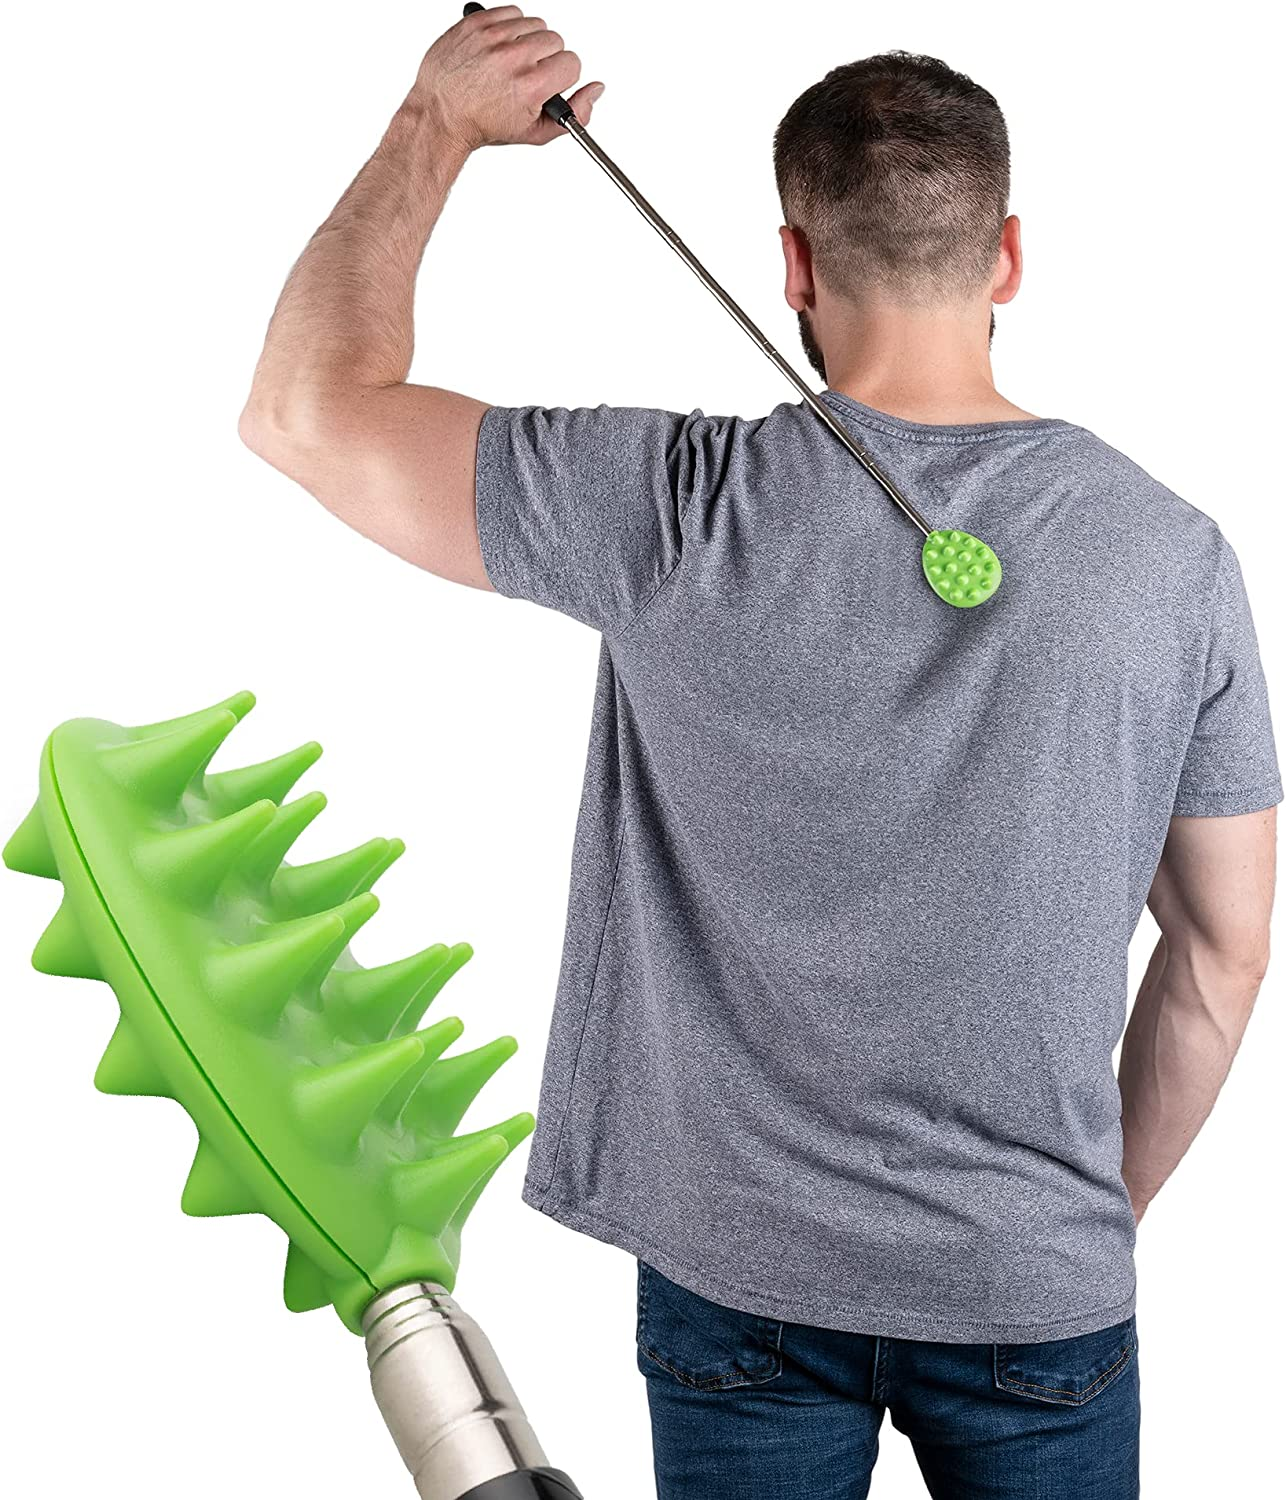 New sales Extendable Cactus Back Scratcher Max 88% OFF Relieves Itching ABS Plastic